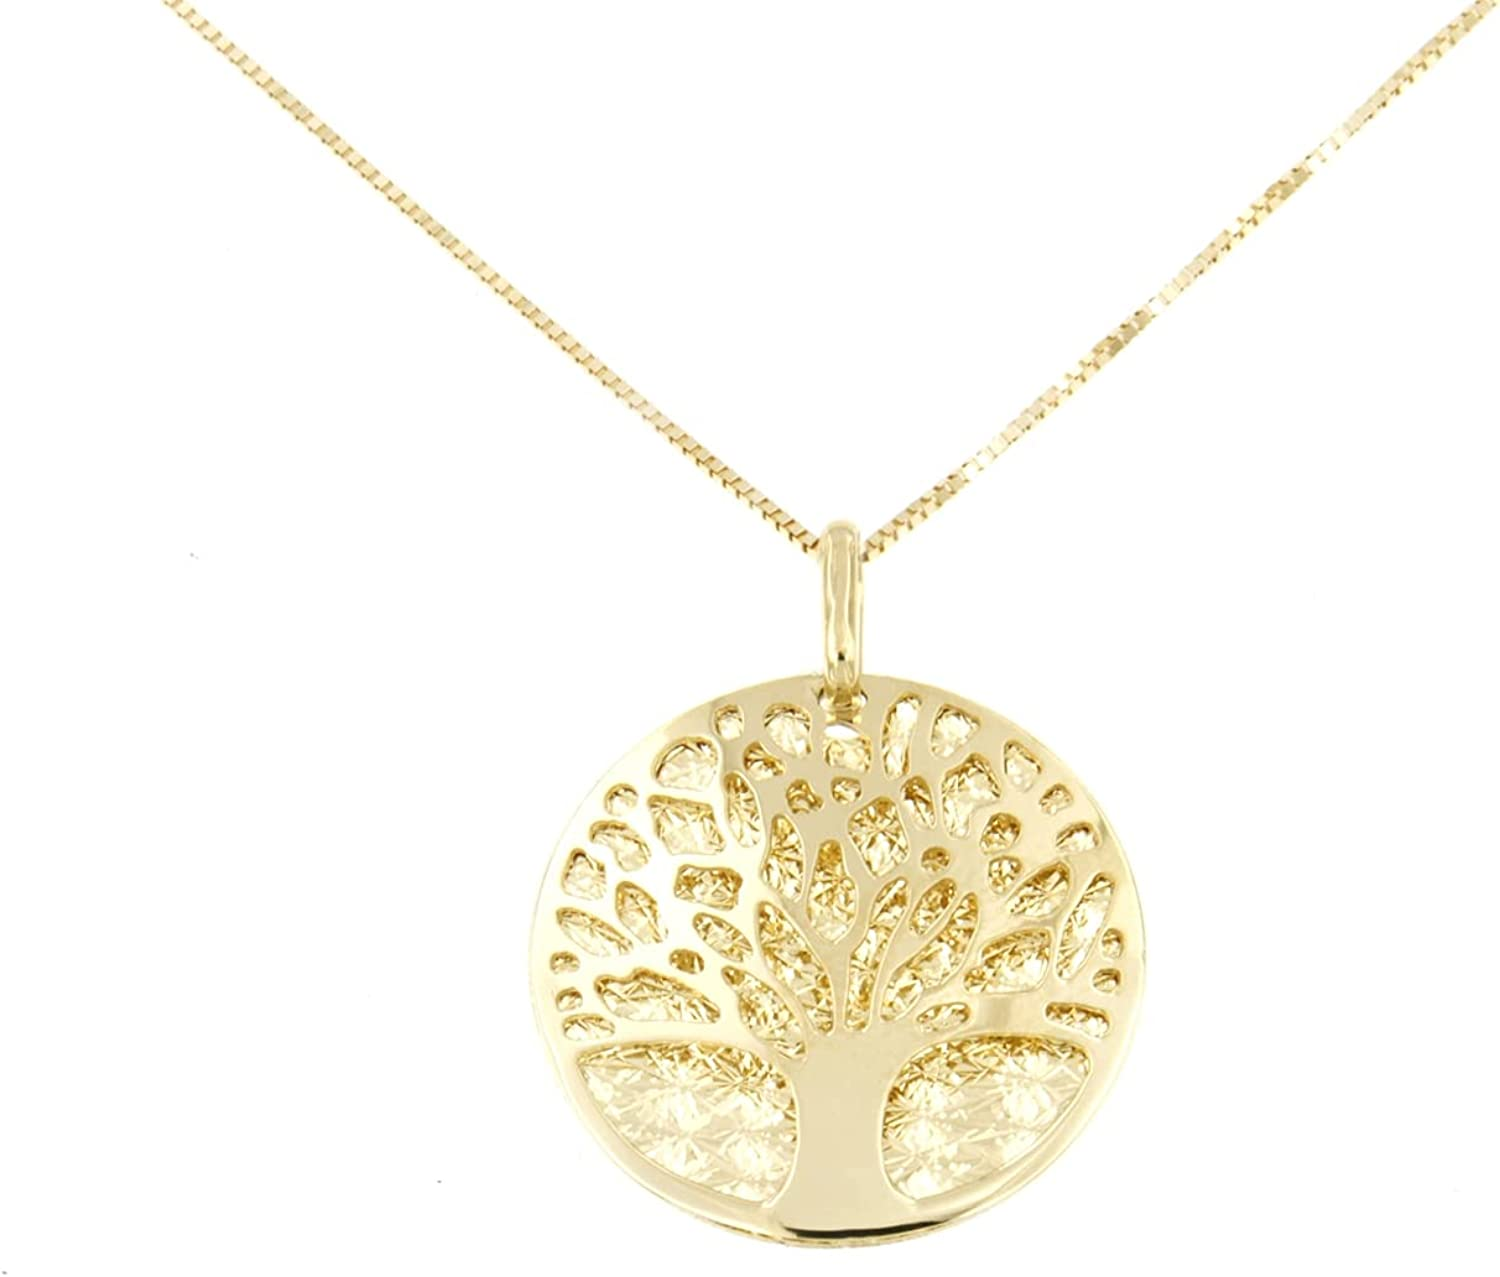 Lucchetta - Premium 14 karat Yellow Gold Tree of Life Pendant Necklace, 16+2 inch, 14k Italian Solid Gold Necklaces for Women Teen Girls, Made in Italy Fine Jewelry, XD8431-VE38